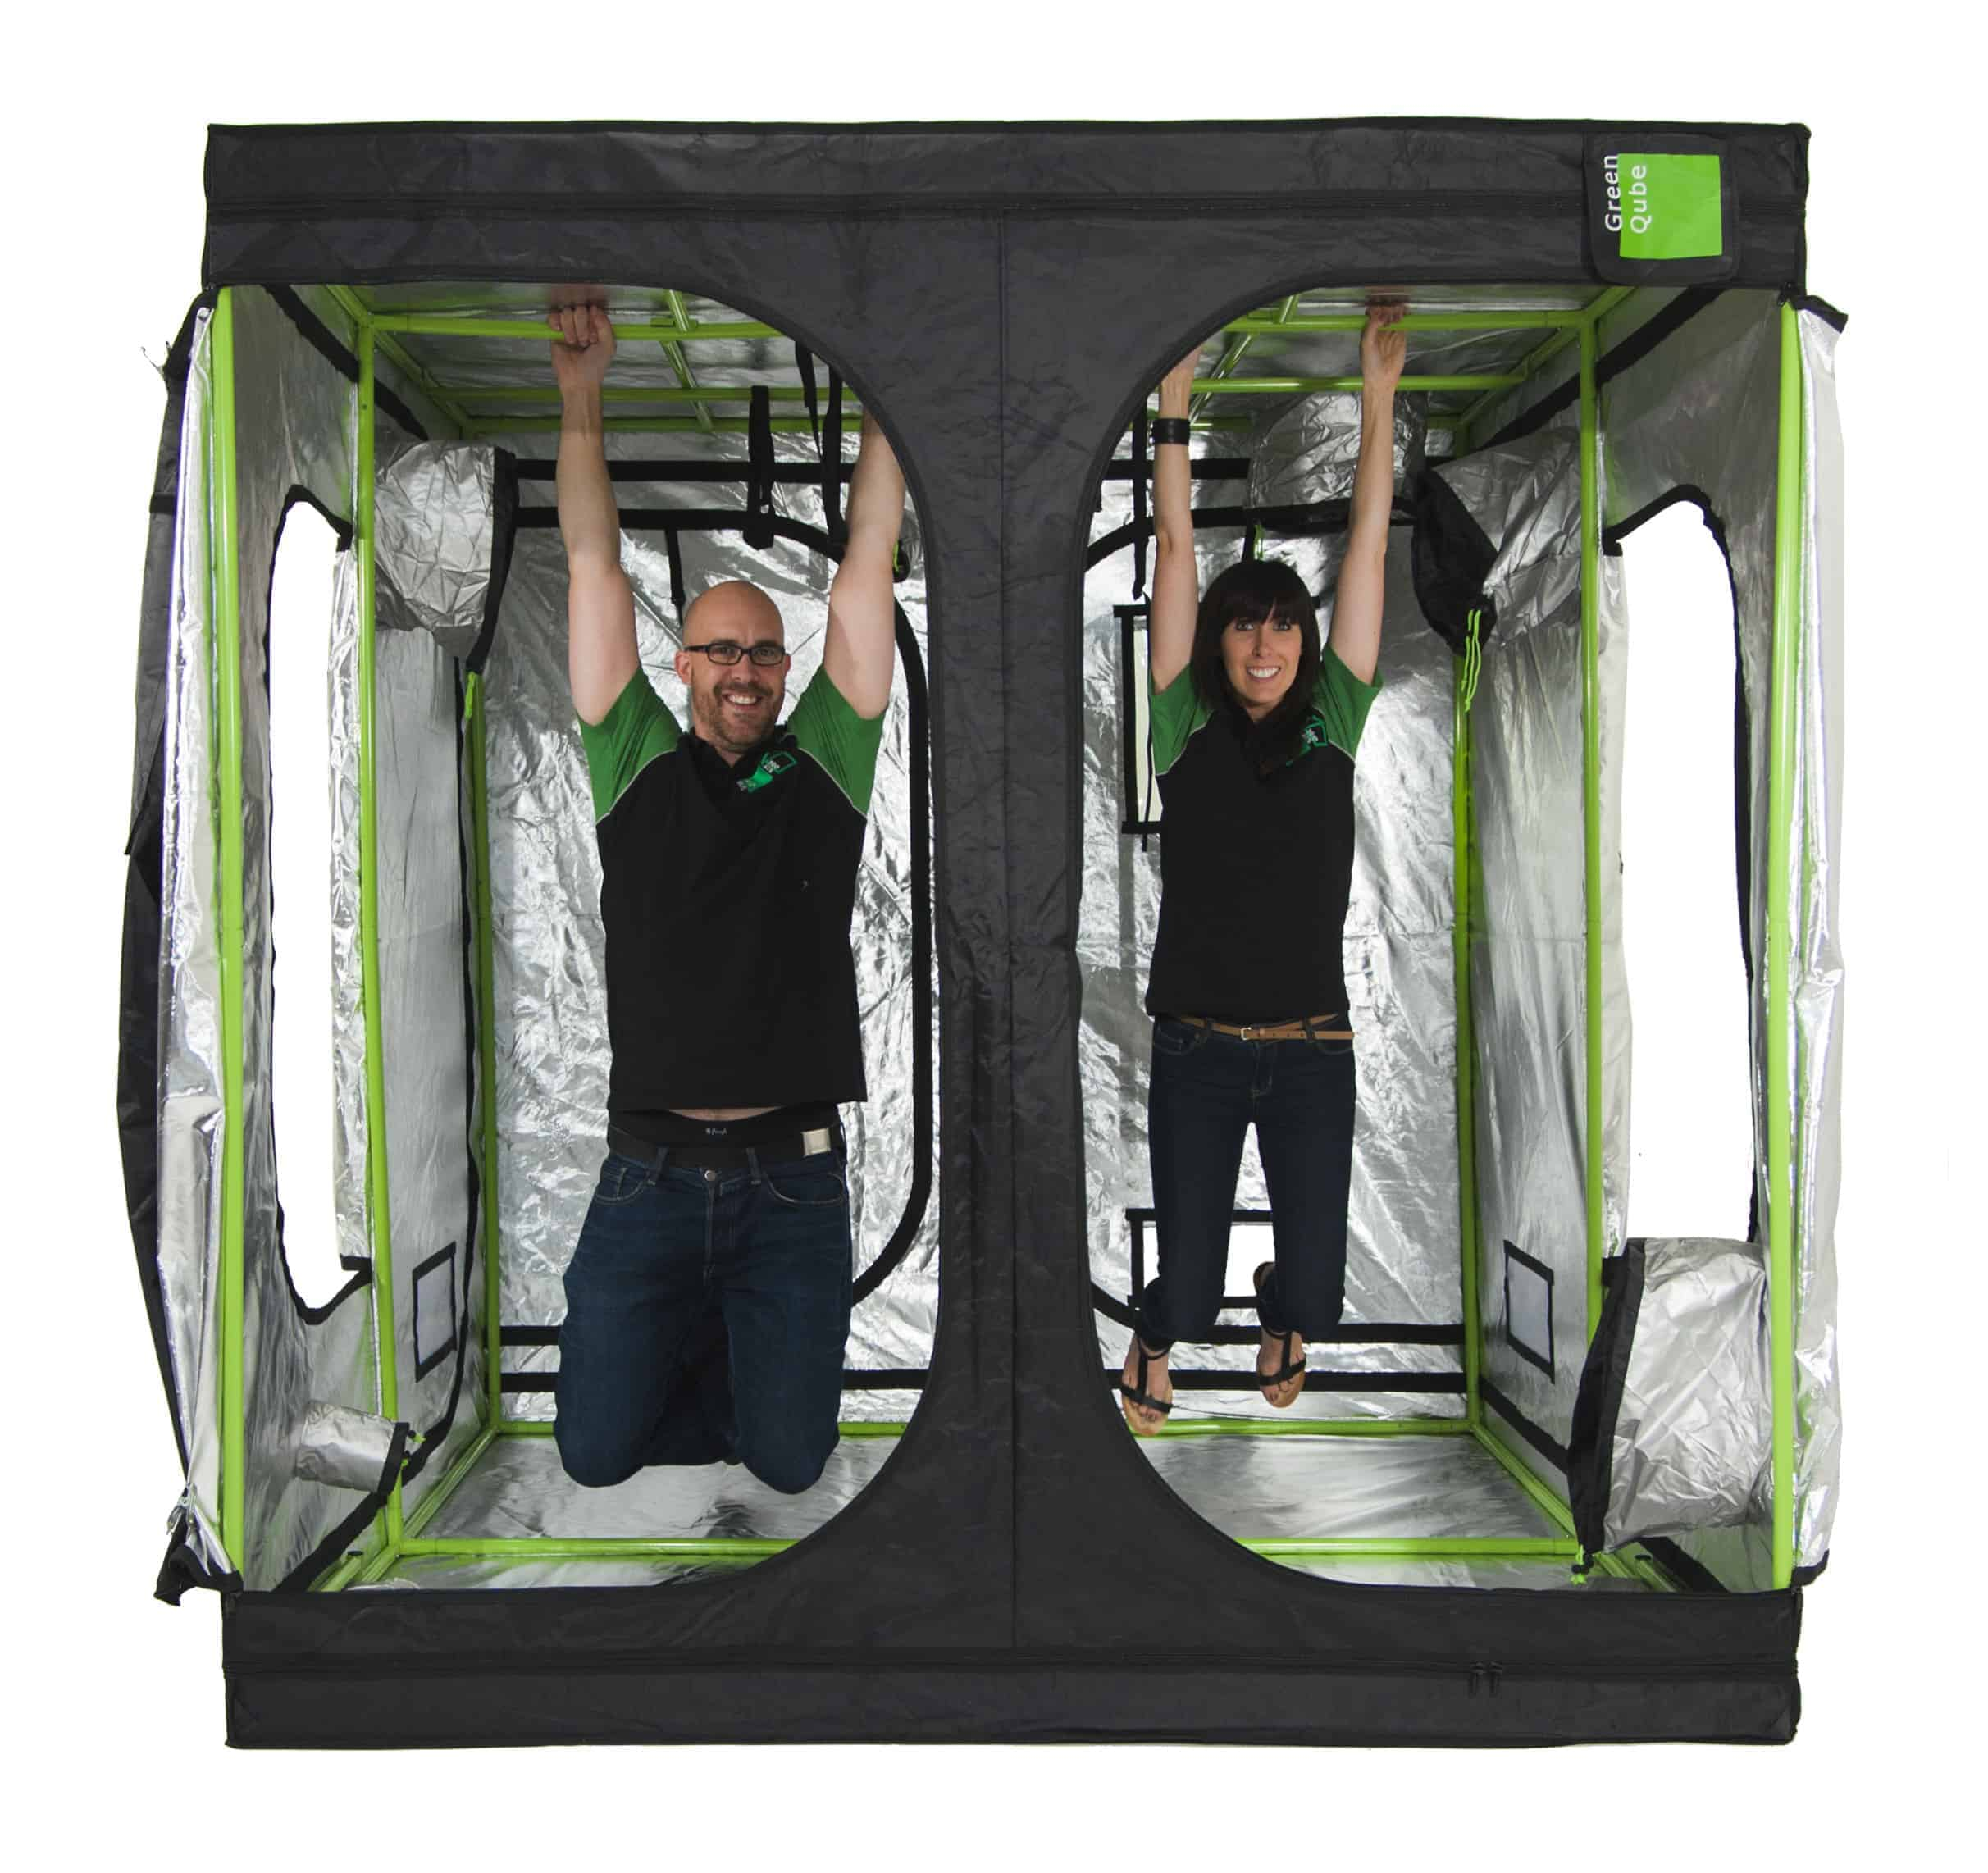 ... grow tent hanging weight of 100kg · Roof Qube hanging weight of 100kg ...  sc 1 st  Green Qube & Green-Qube 240 Grow Tent - 2.4m x 2.4m x 2.2 and 2m